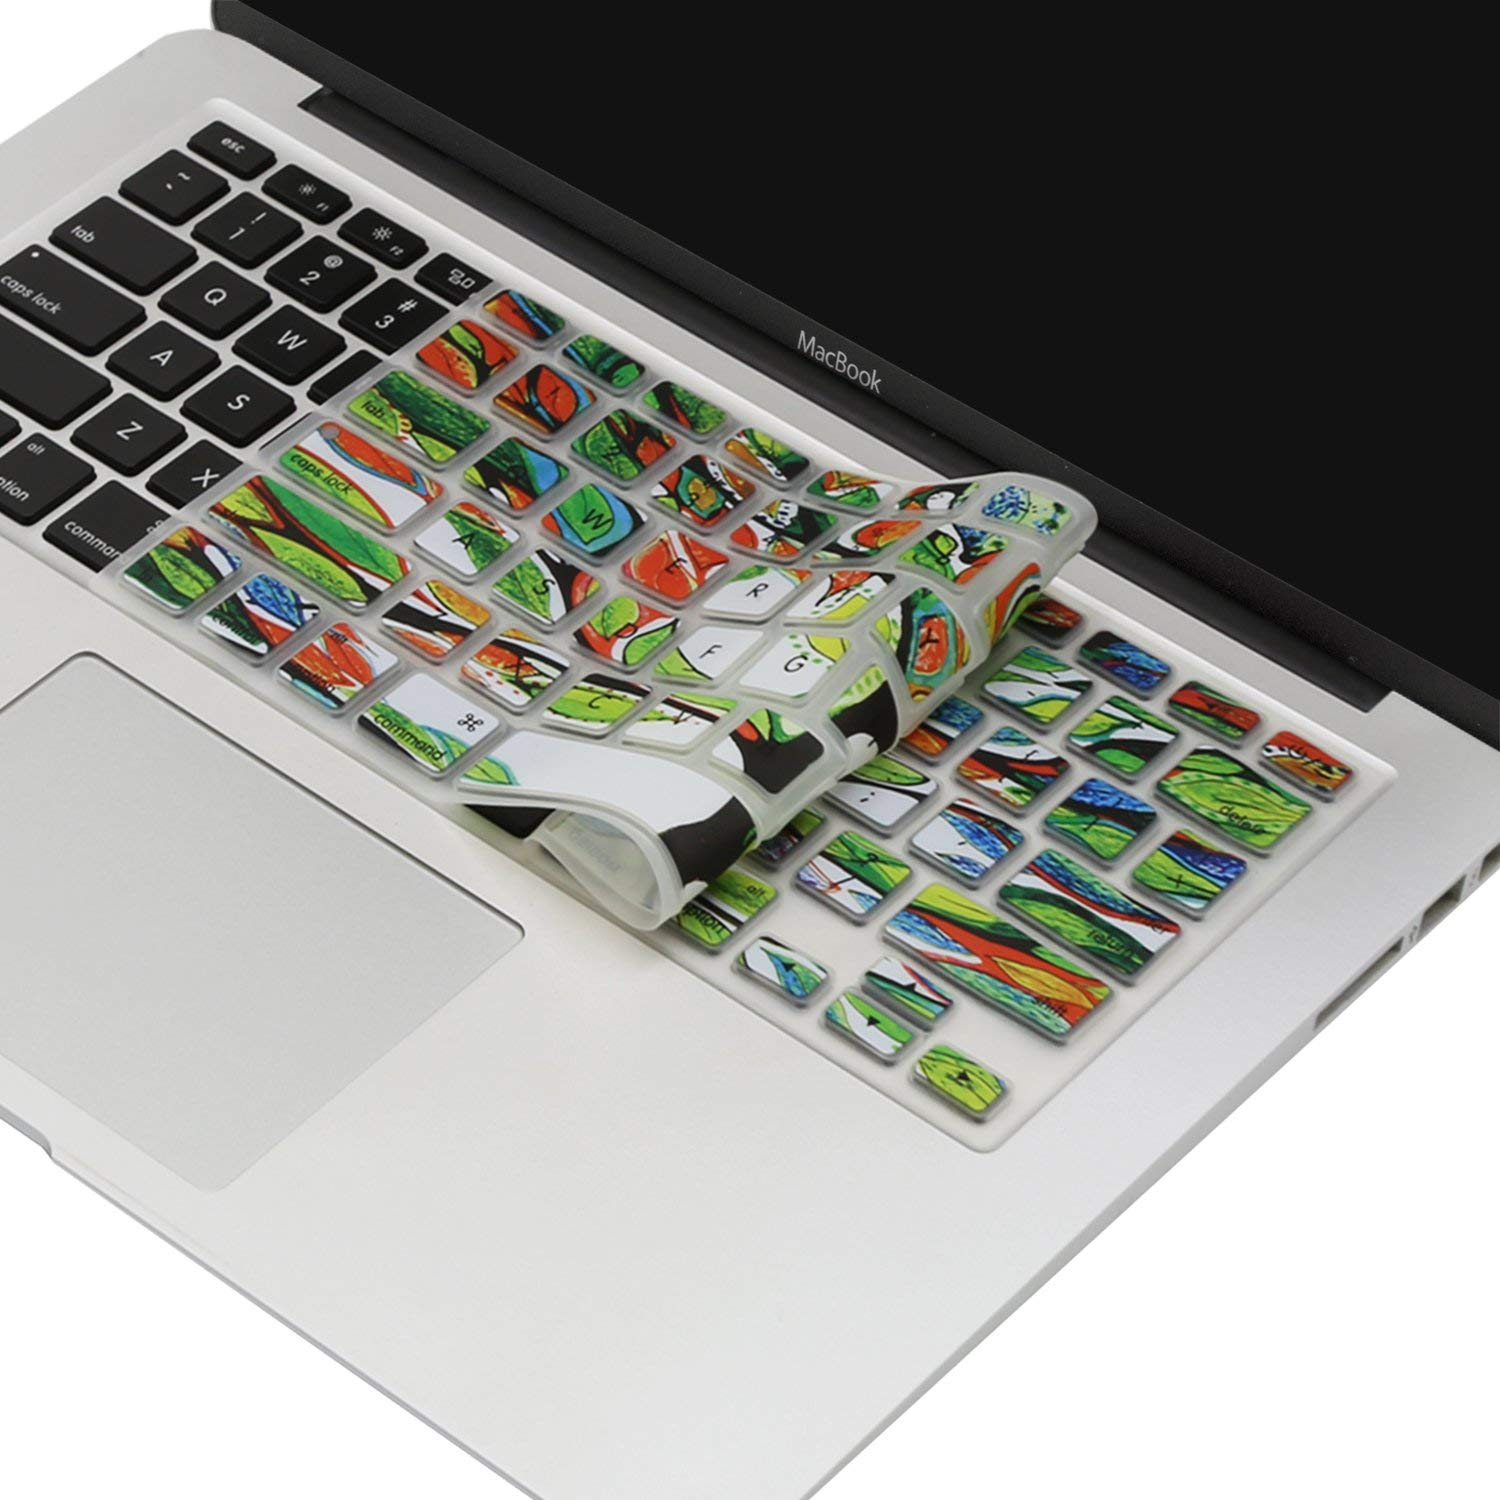 ,Rainbow II with//Without Retina Display,2015 or Older Version MOSISO Keyboard Cover with Pattern Compatible 13//15 Inch A1466//A1369, Release 2010-2017 Older MacBook Air 13 Inch